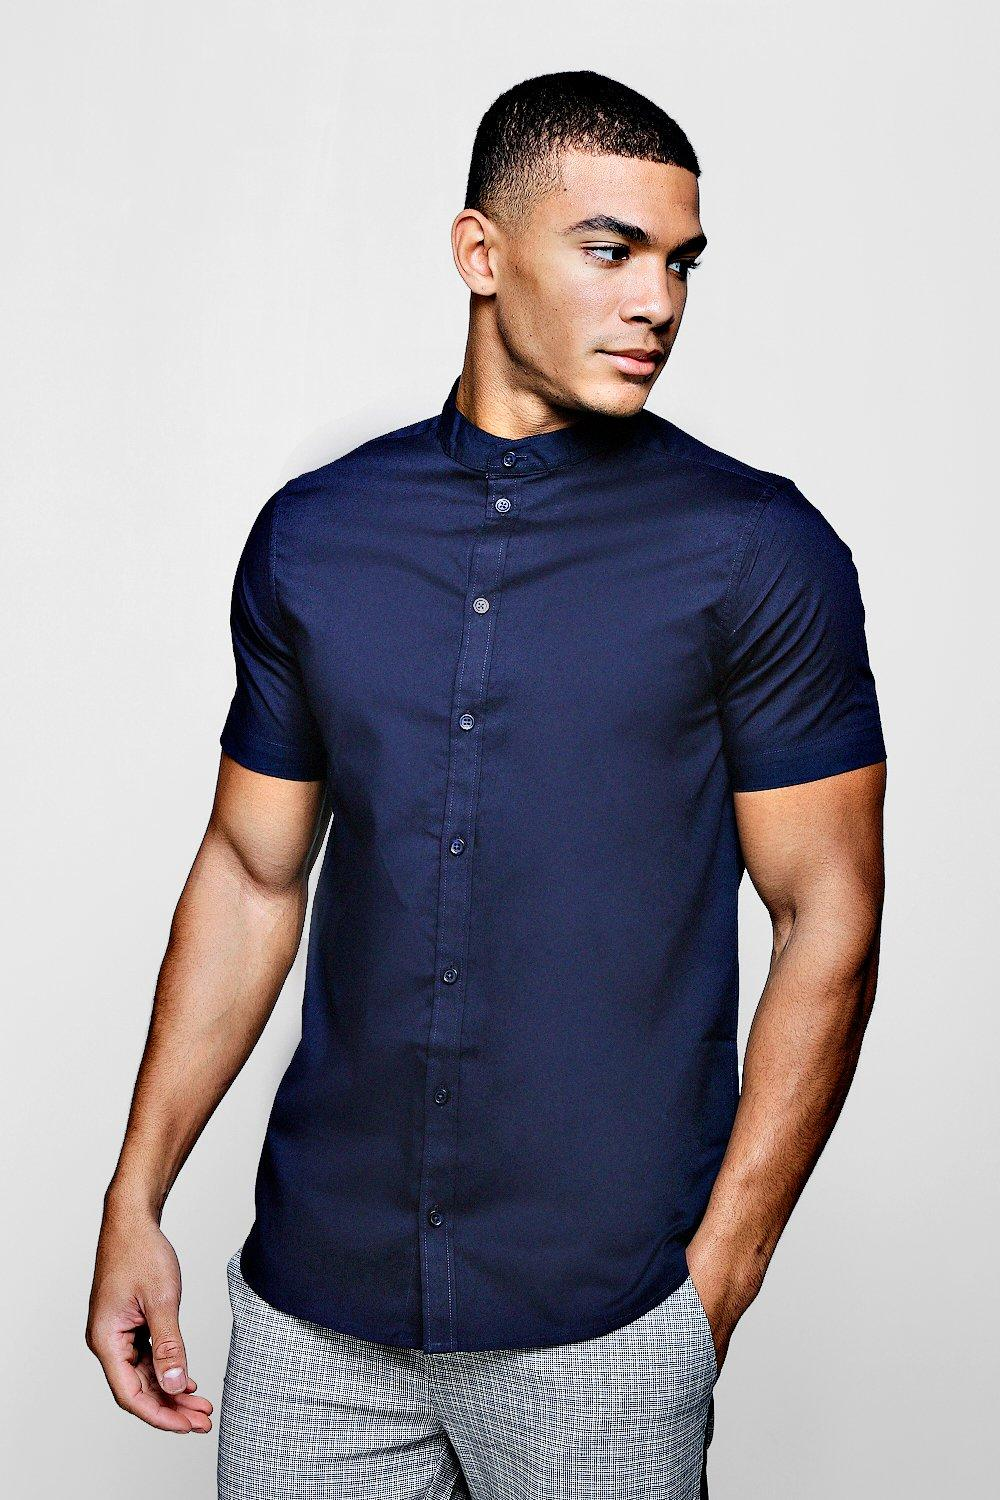 21e26c7d Mens Navy Muscle Fit Grandad Collar Short Sleeve Shirt. Hover to zoom